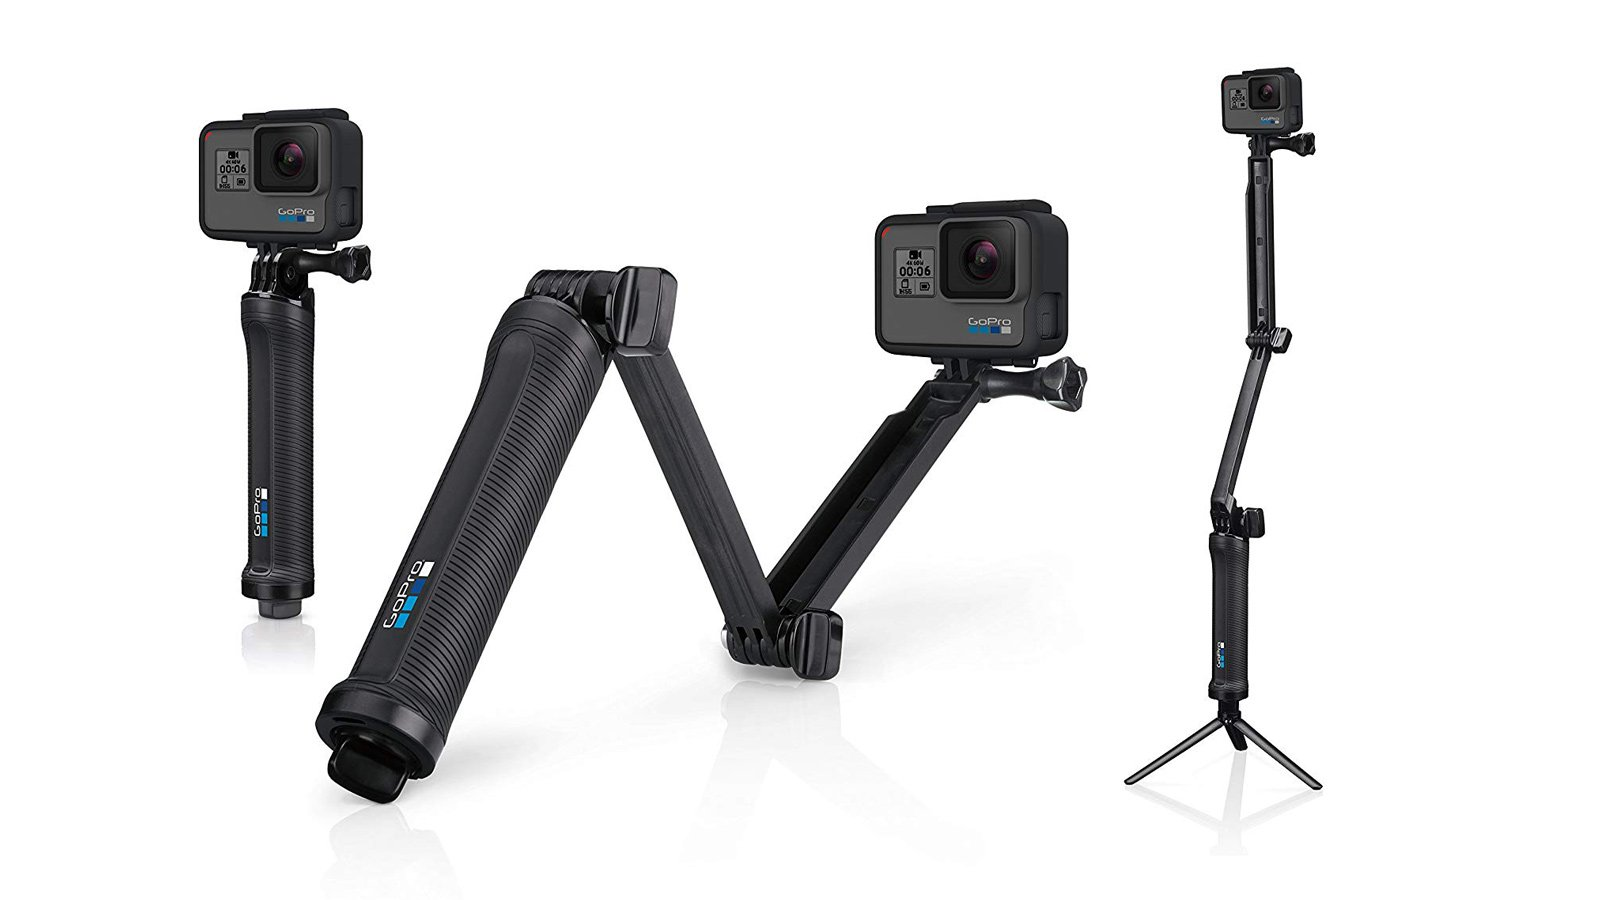 Best GoPro accessories 2019: The best gimbals, selfie sticks, mounts